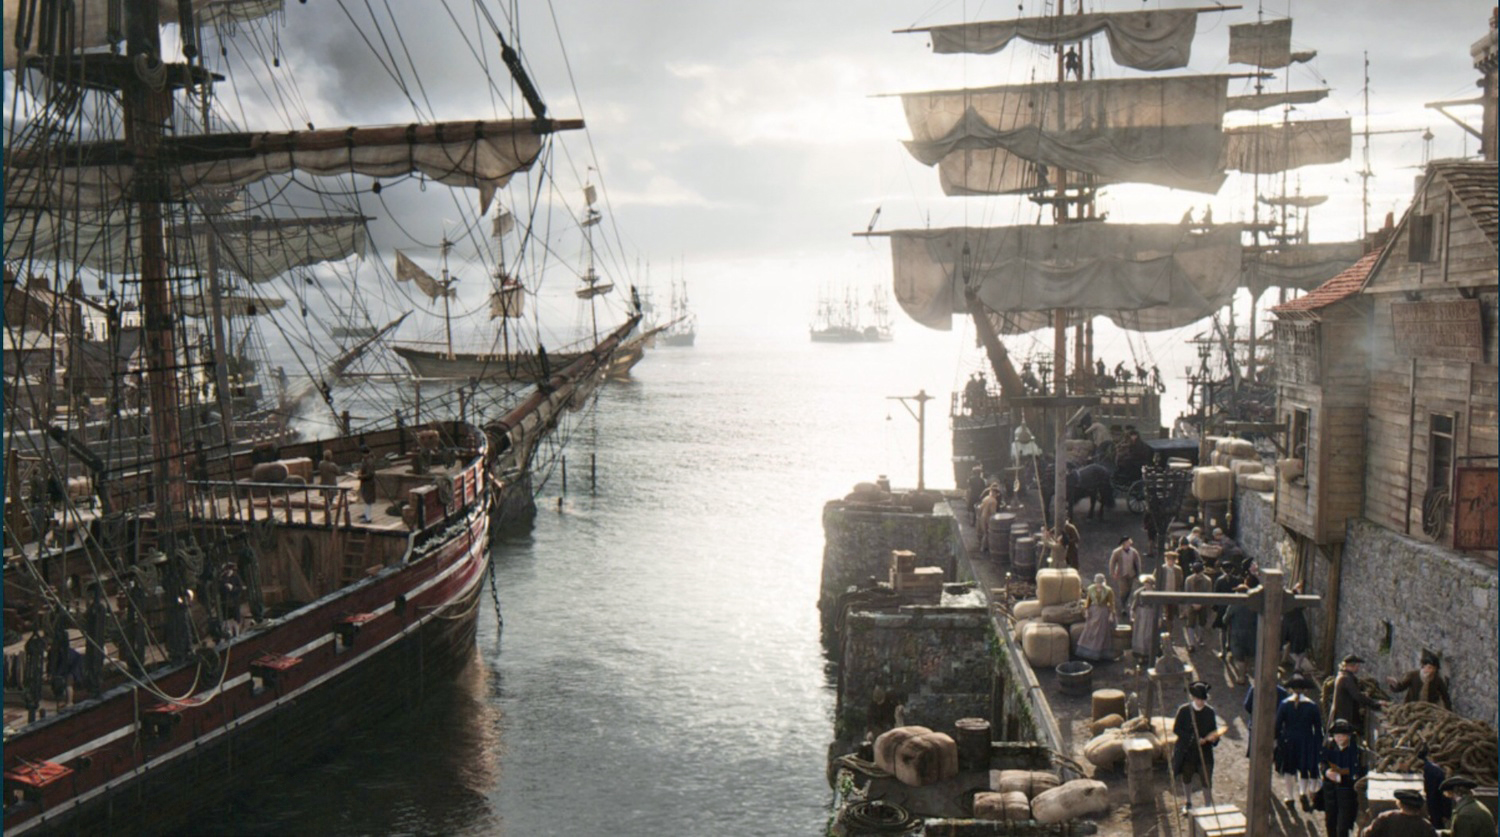 Bristol Dock scene complete with additional CG ships.